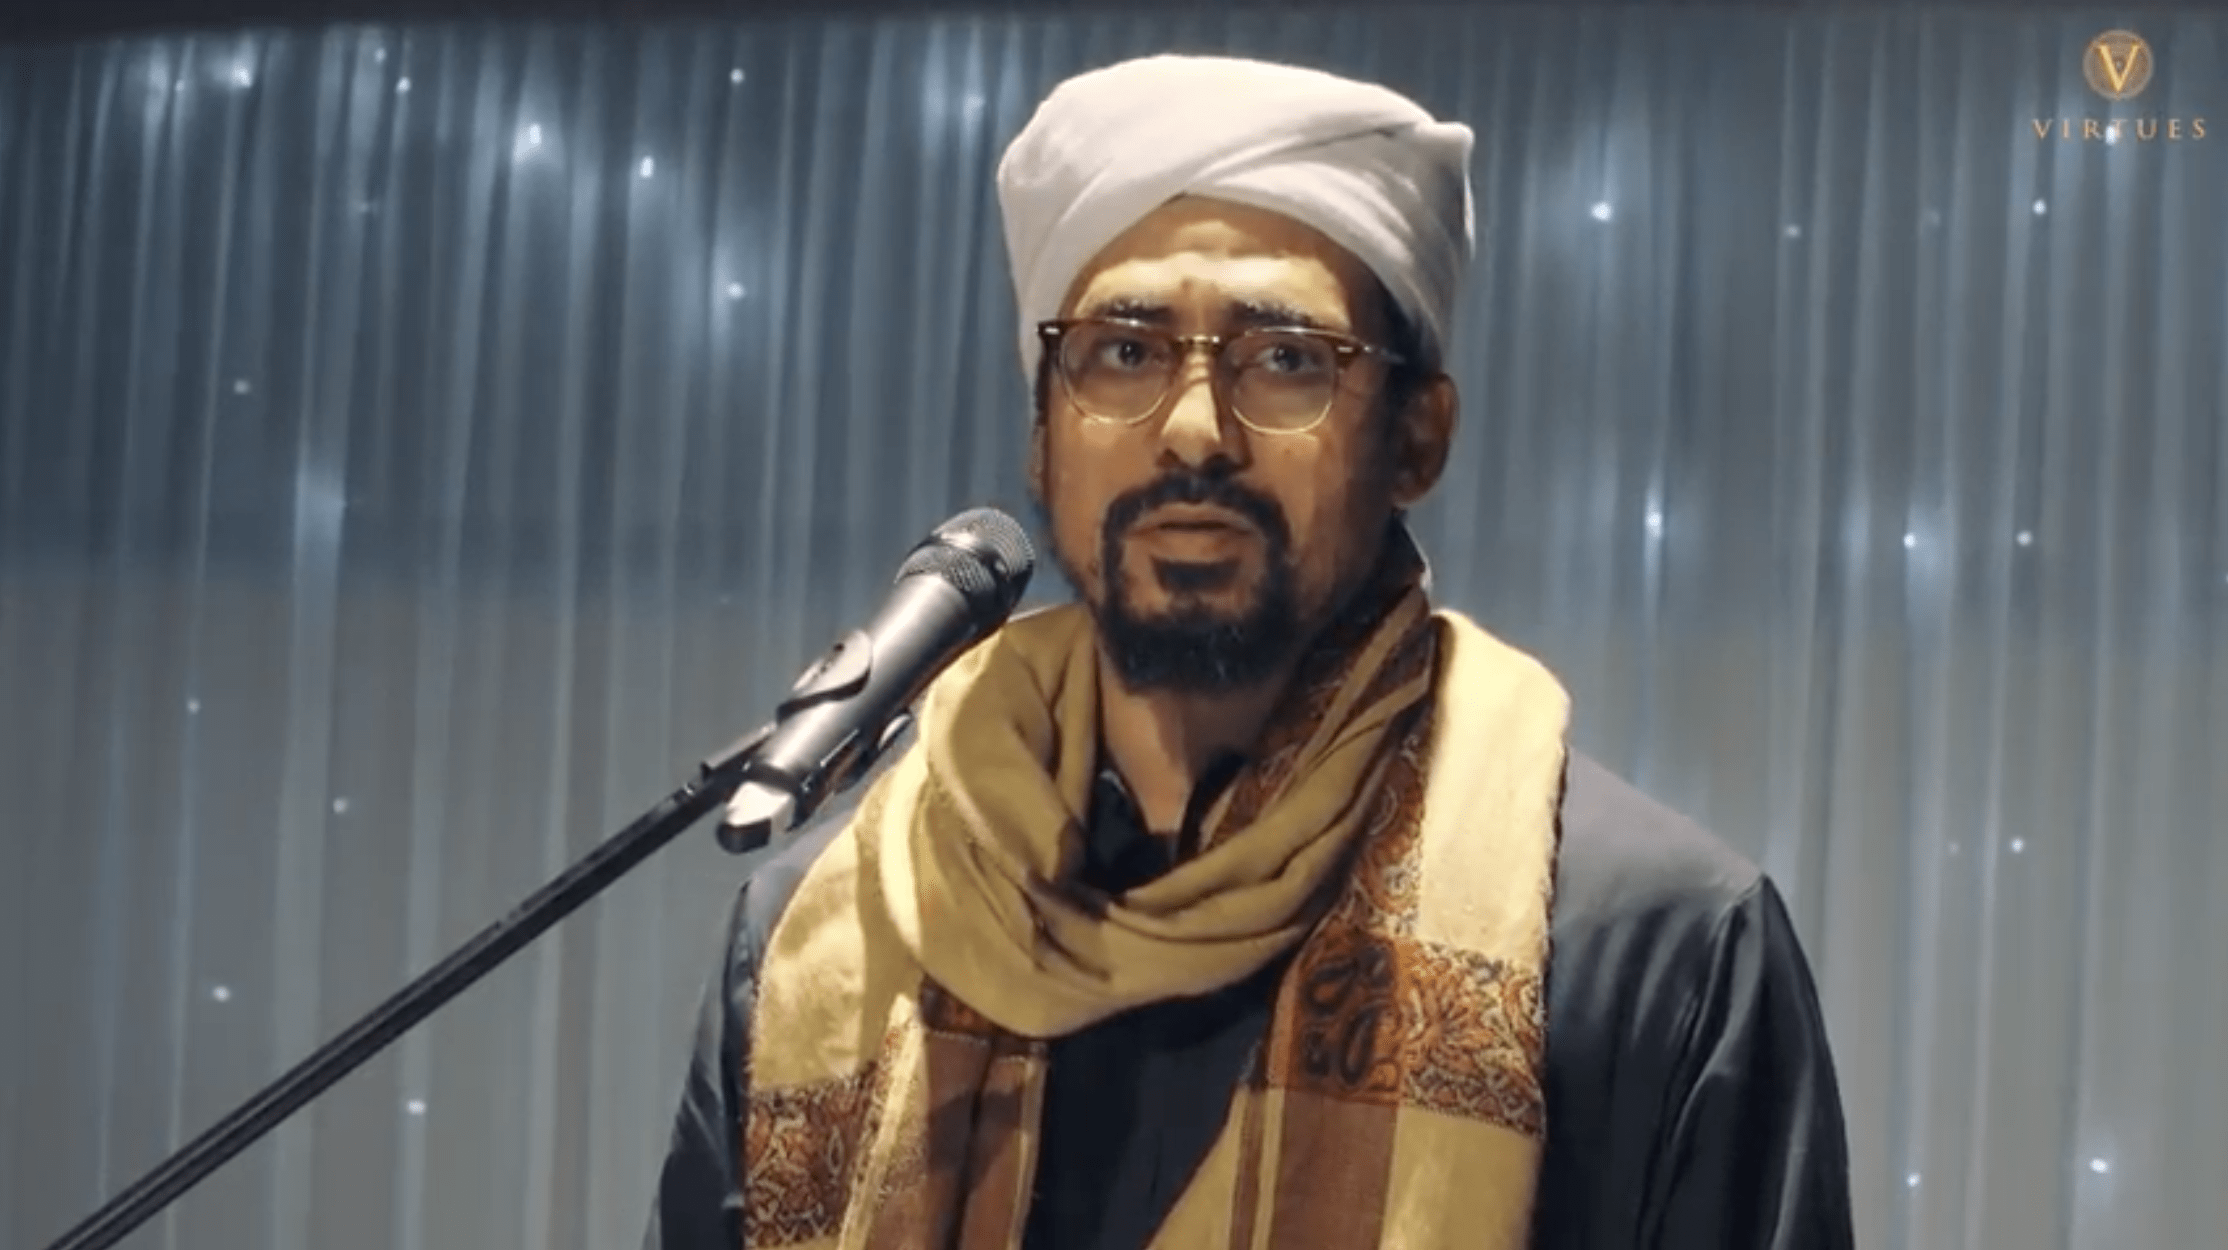 Abdul Karim Yahya – Wealth, Women and the Love of Self